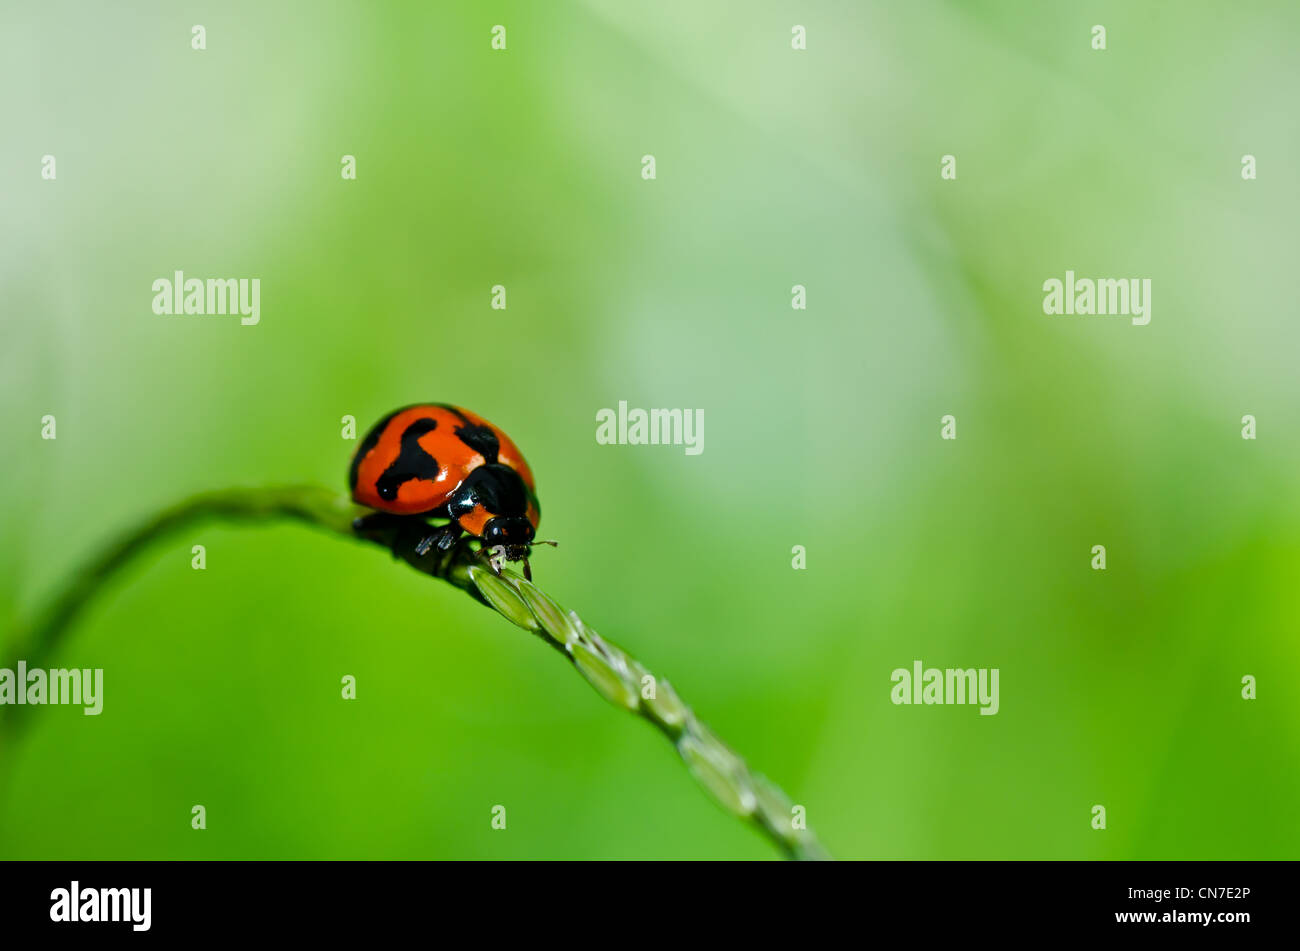 ladybug in the green nature or in the garden Stock Photo